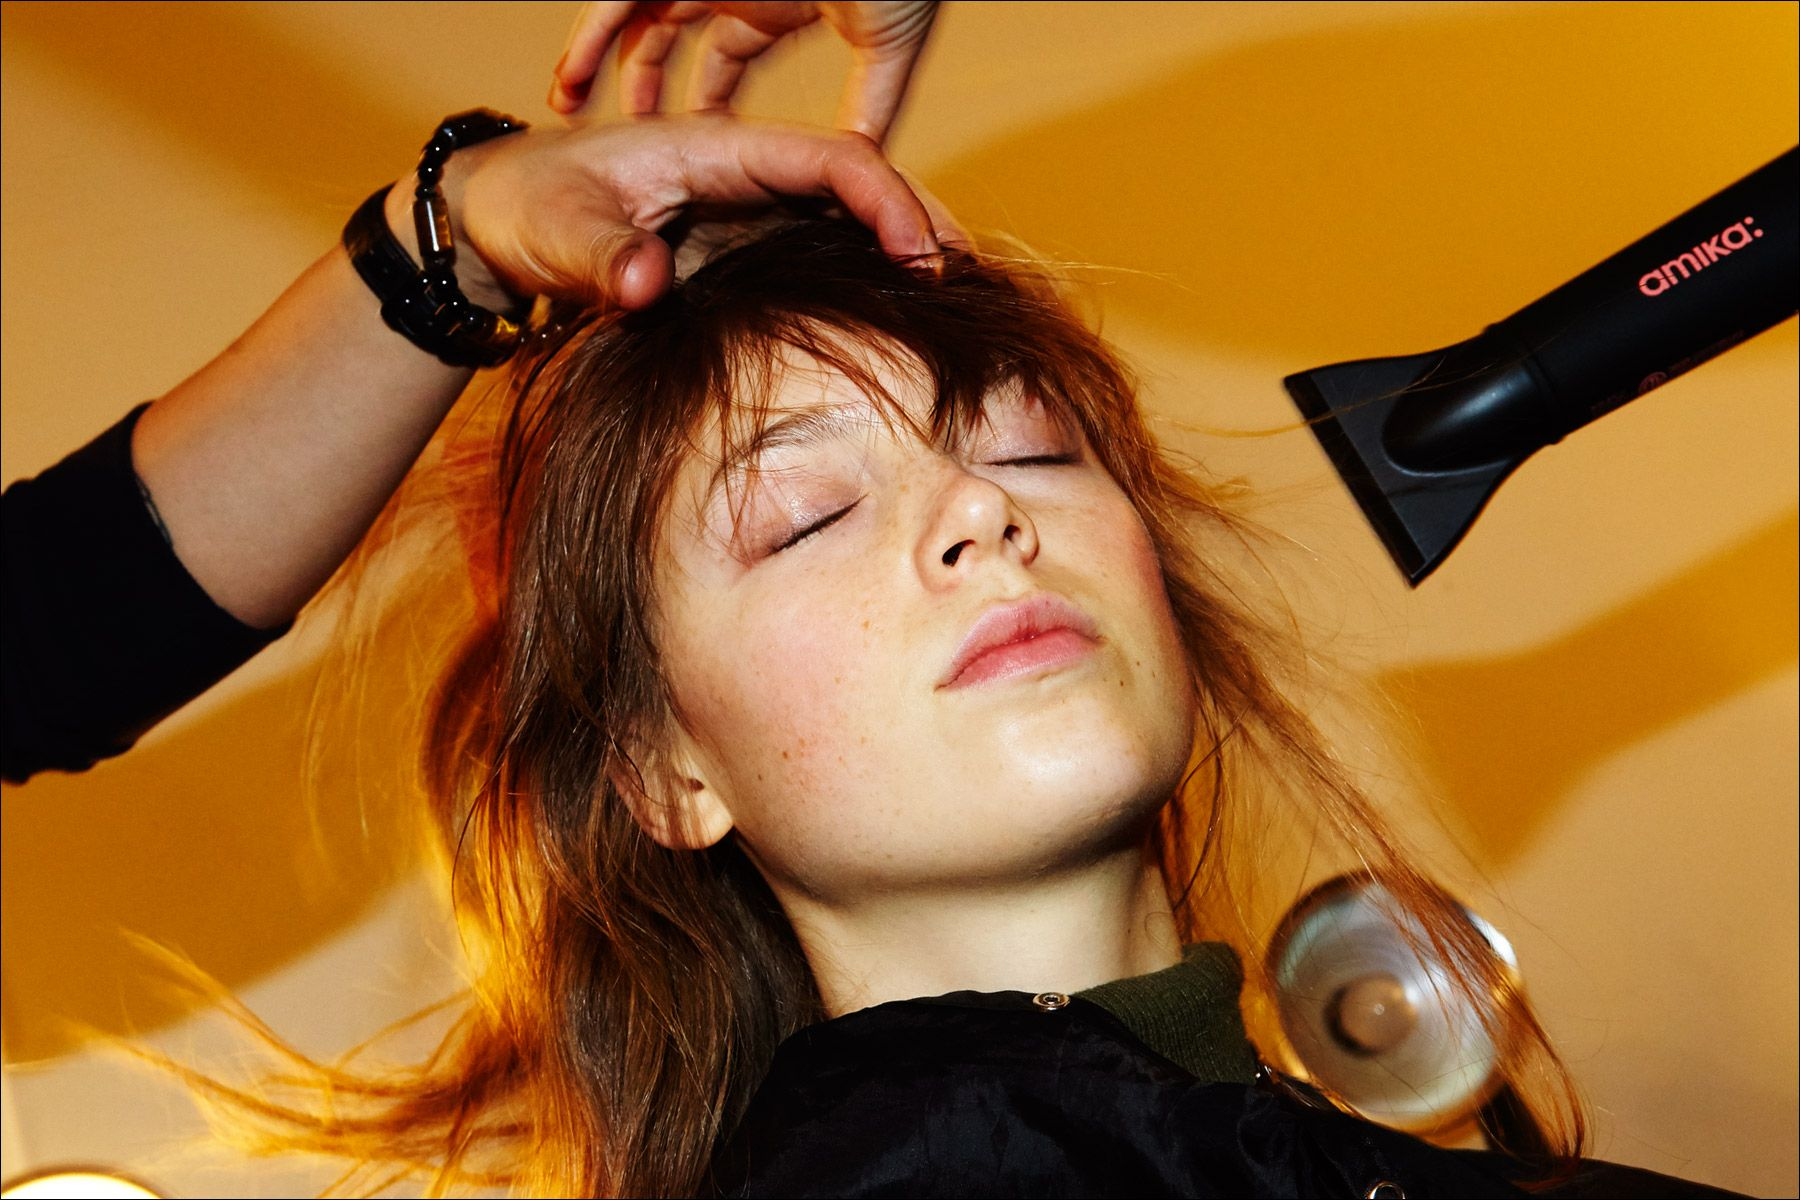 A model gets a blowout backstage at the Adam Selman Fall 2017 womenswear show in New York City. Photography by Alexander Thompson for Ponyboy magazine New York.